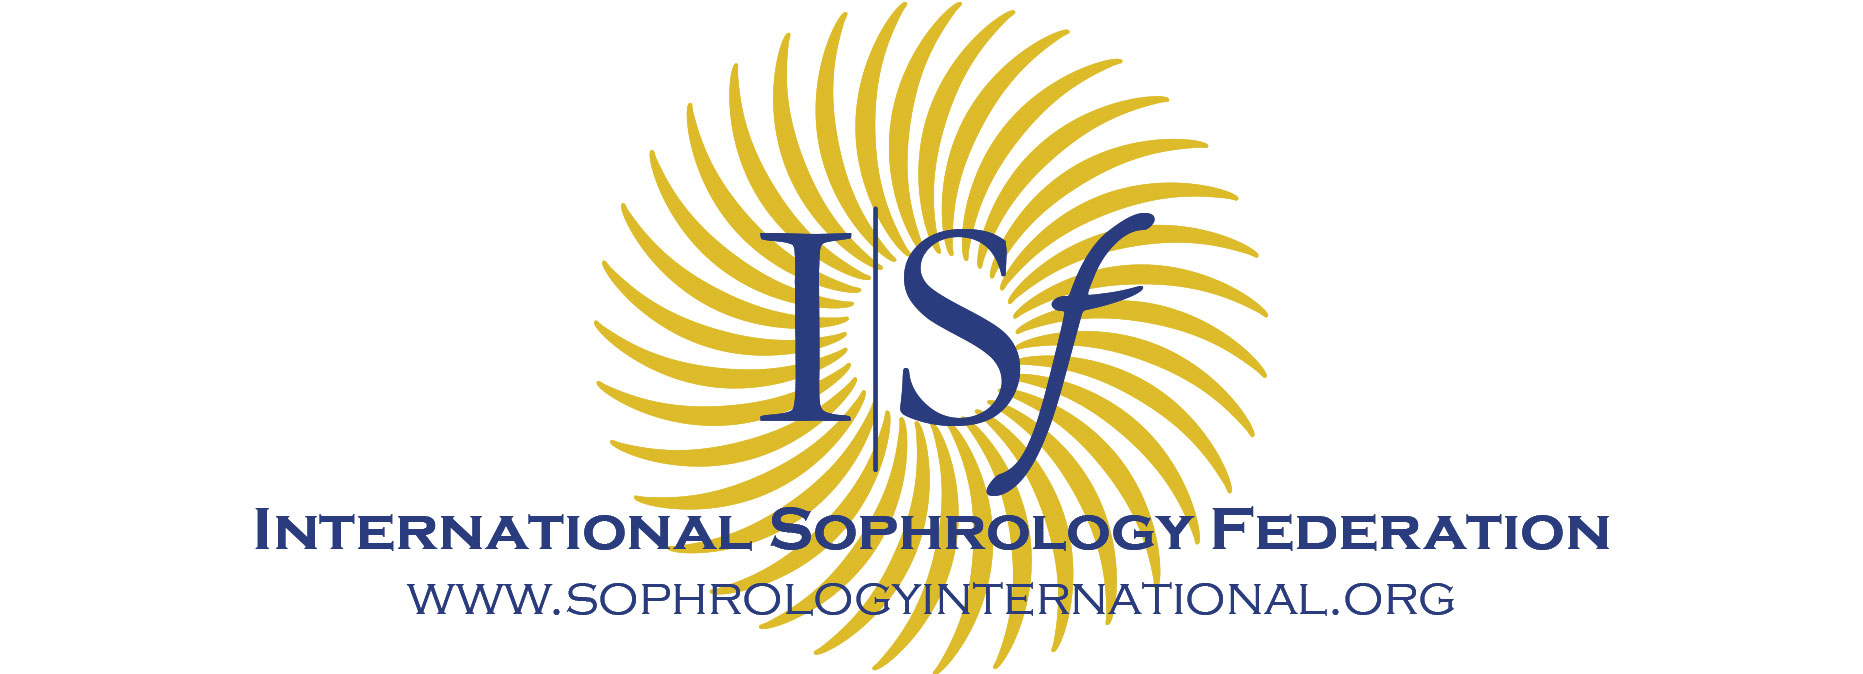 Free 1 hour Sophrology sessions in various locations